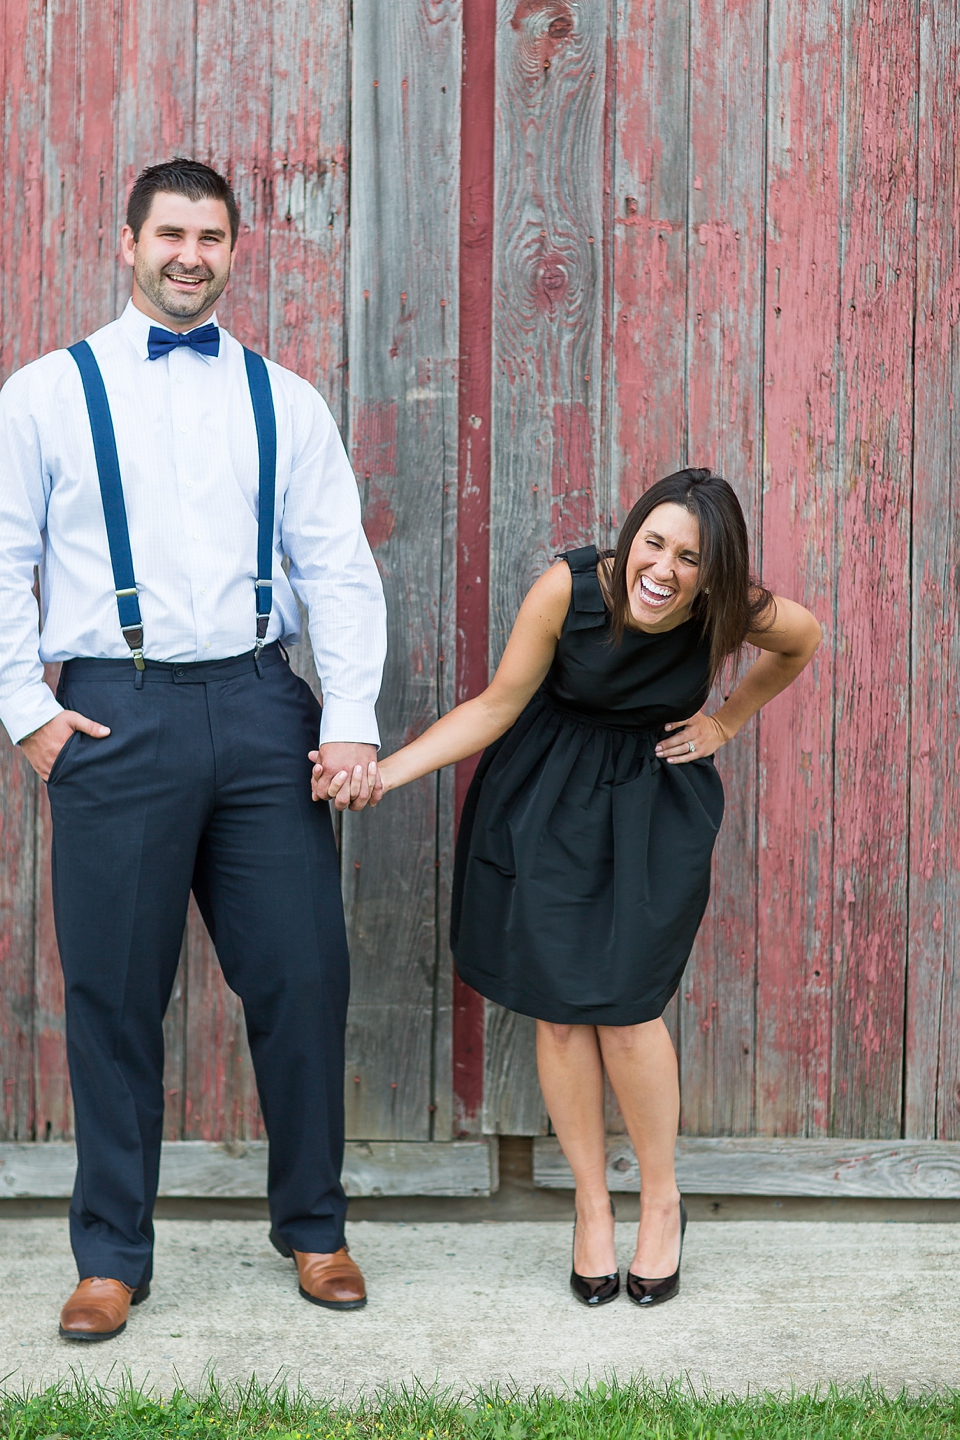 scranton_engagement_photography_0077